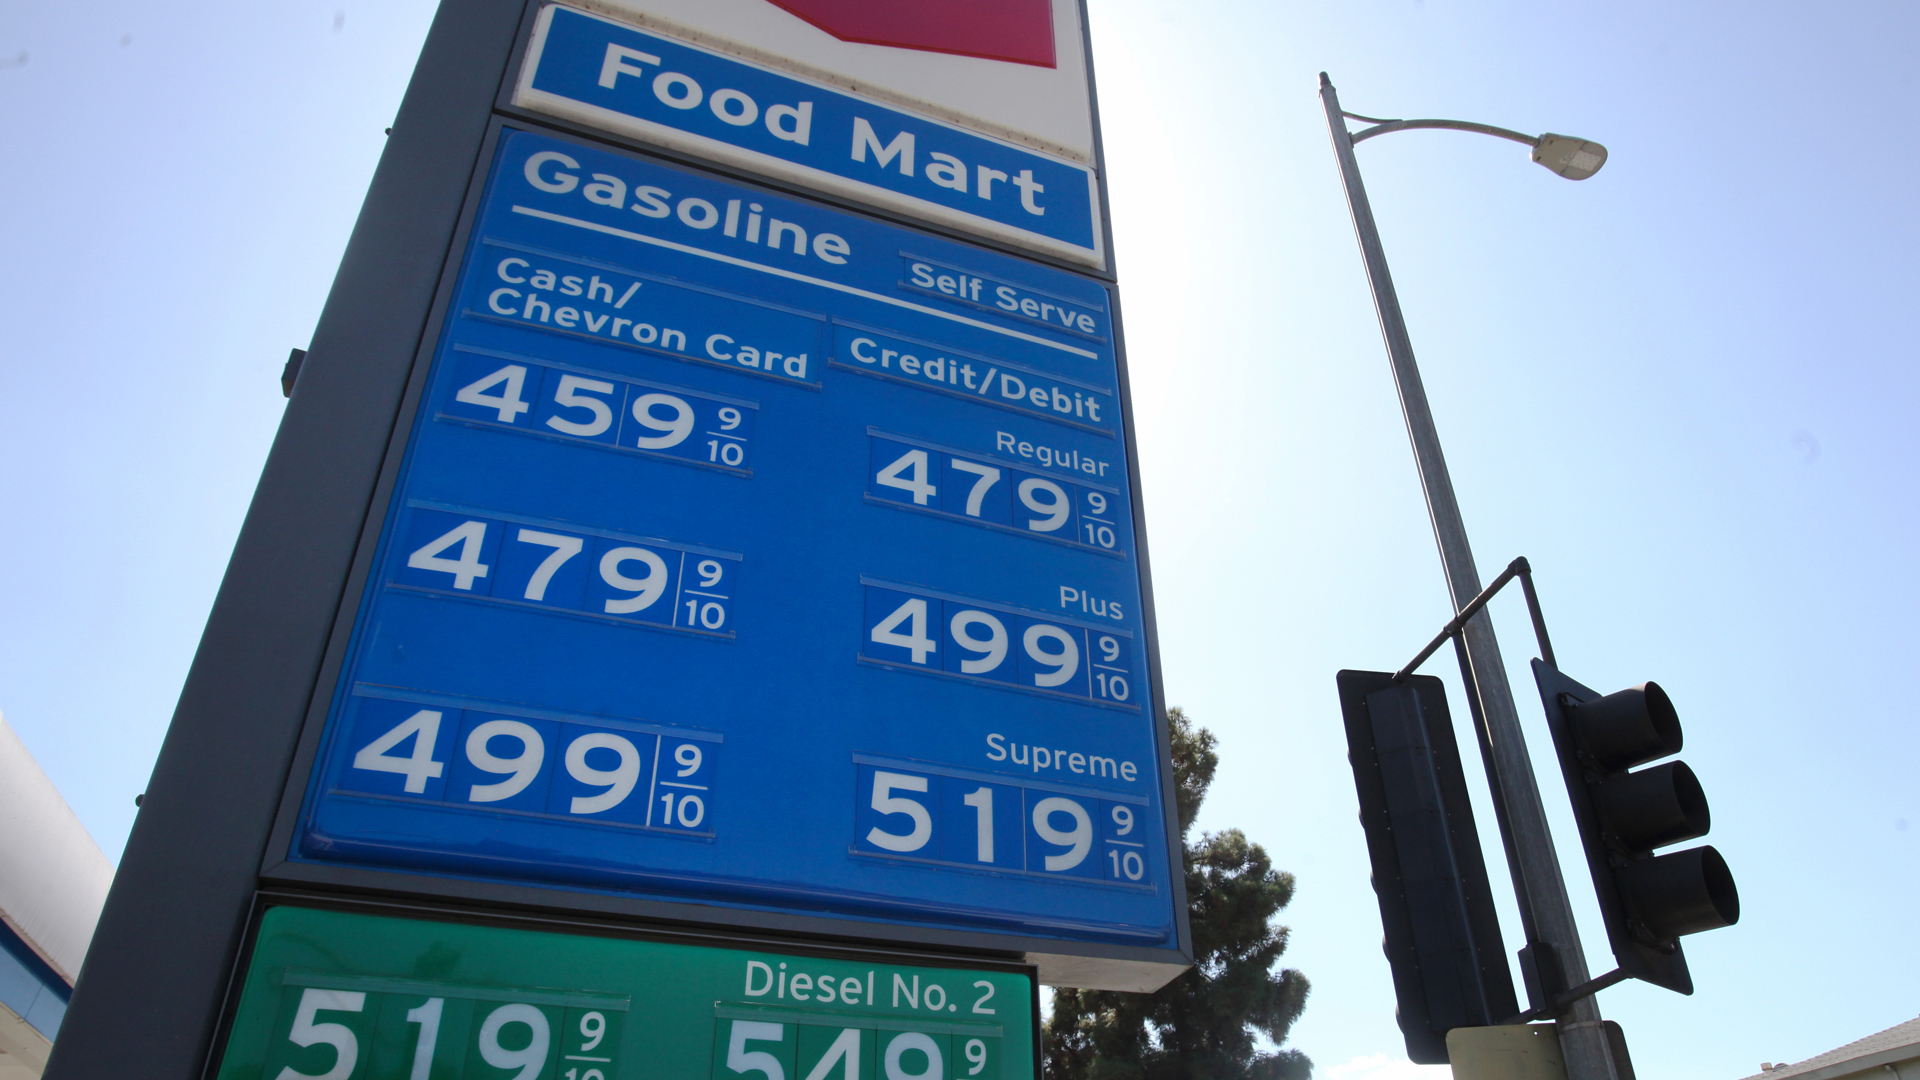 Prices of gasoline per gallon are displayed at a gas station on October 1, 2019 in Los Angeles. (Credit: Mario Tama/Getty Images)